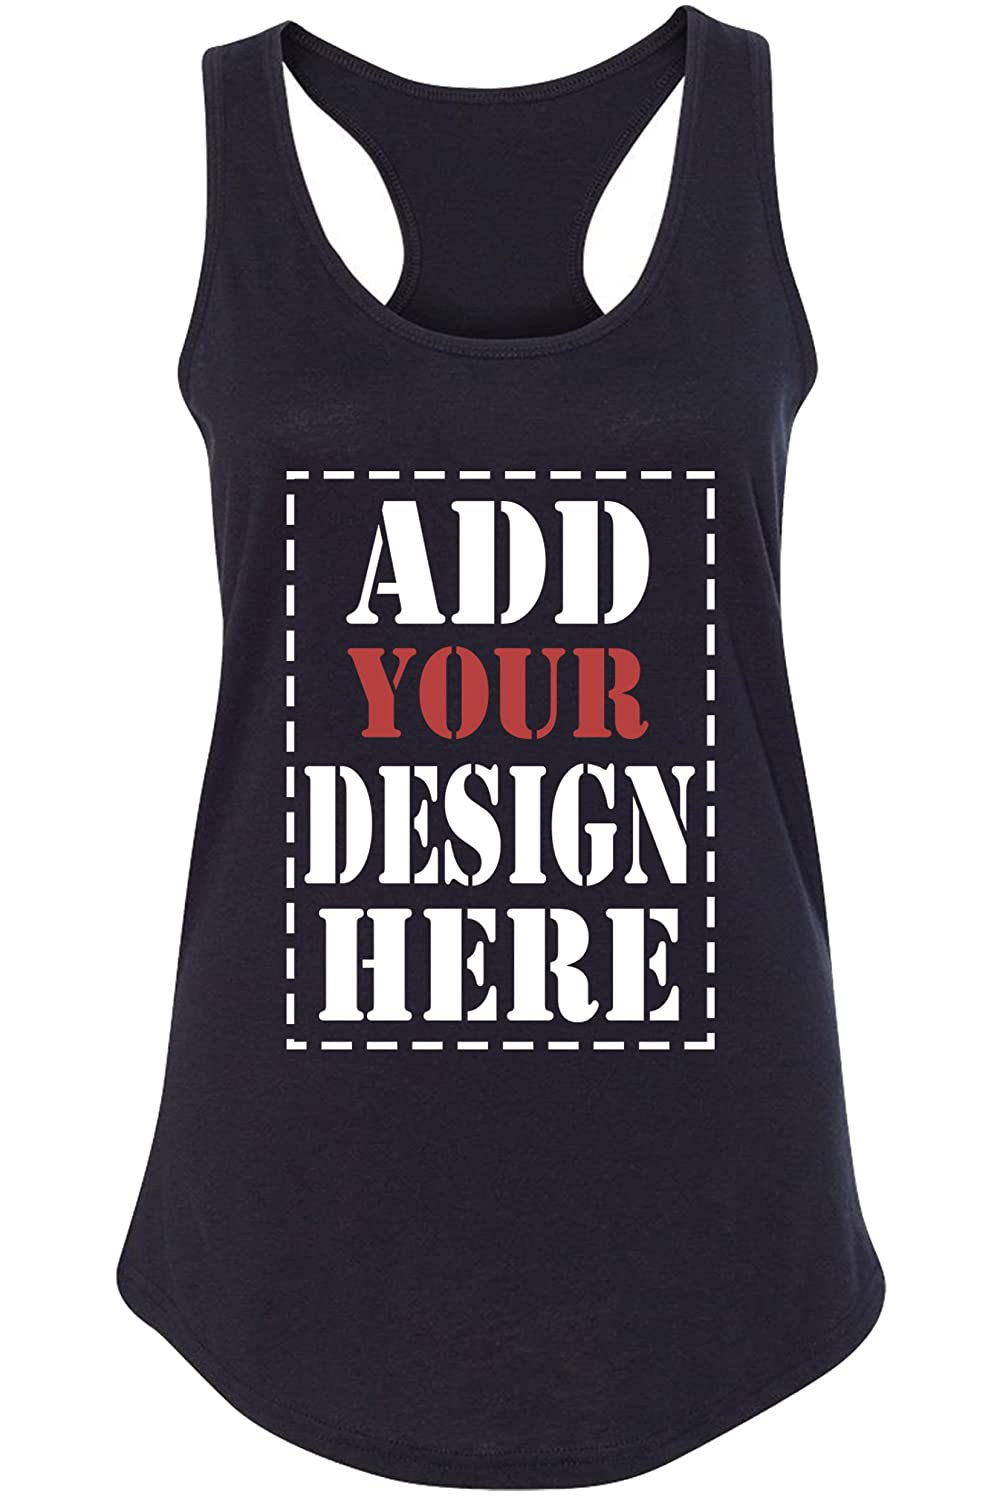 ffd81a32644e15 MAKE YOUR OWN tank top by adding your own text or image